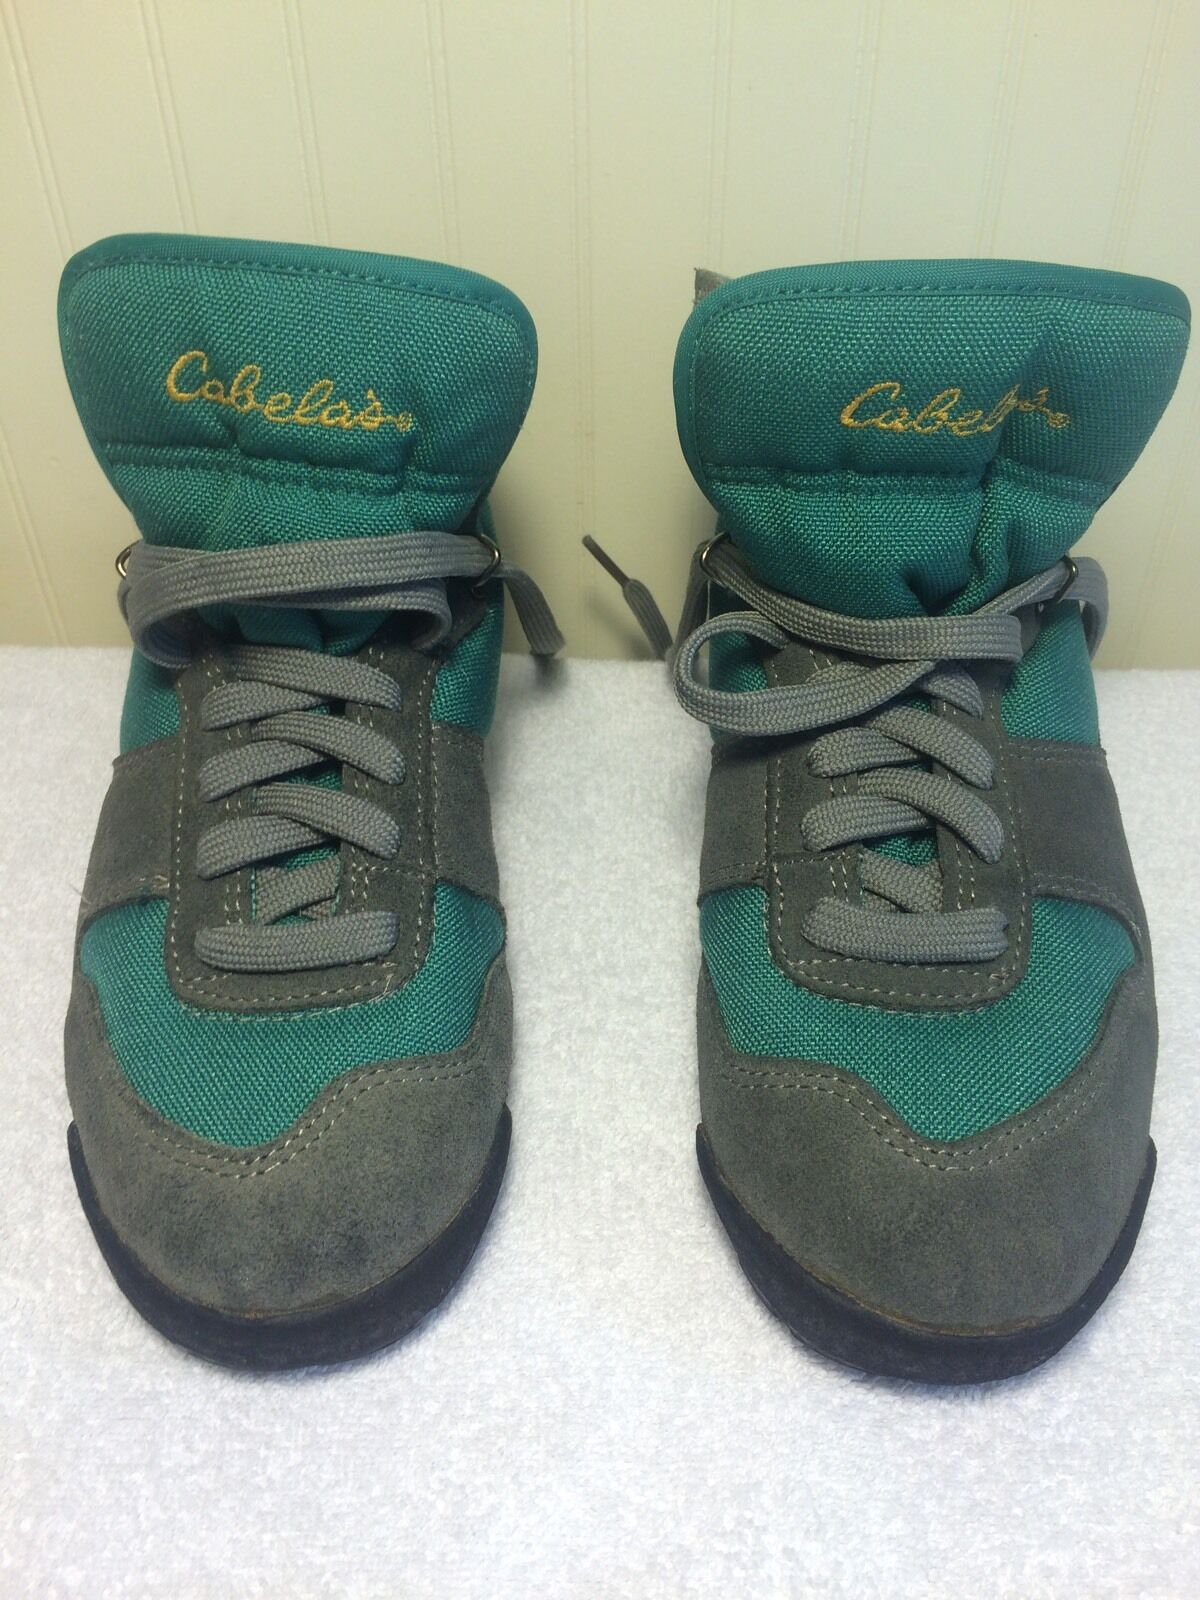 Womens Cabela's Boots US 7 Green 80904 Gray Mid Hiking Shoes 80904 Green d3c3d5